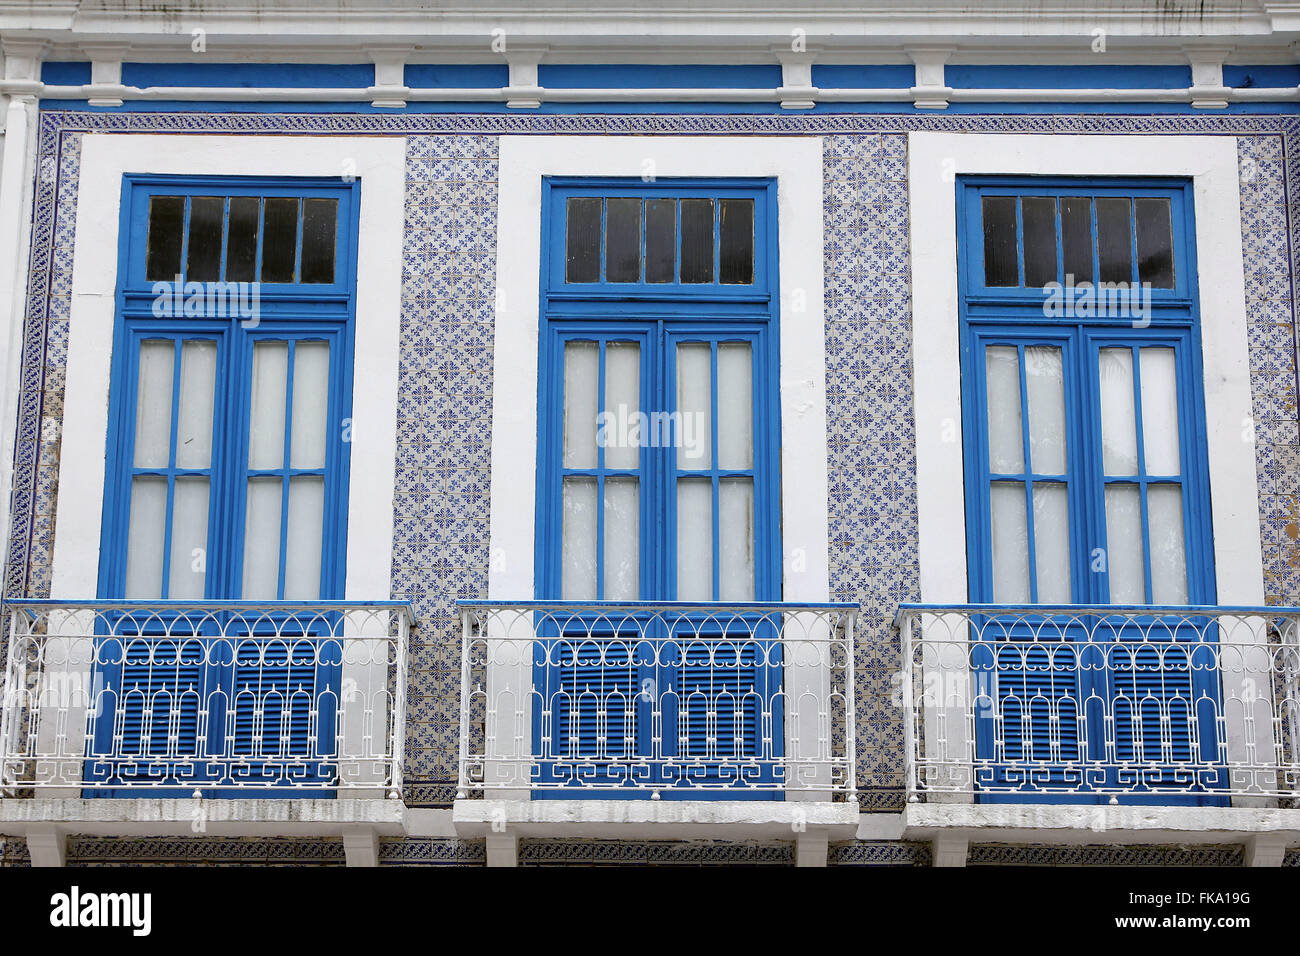 Detail of the facade of colonial townhouse decorated with Portuguese tiles - Stock Image